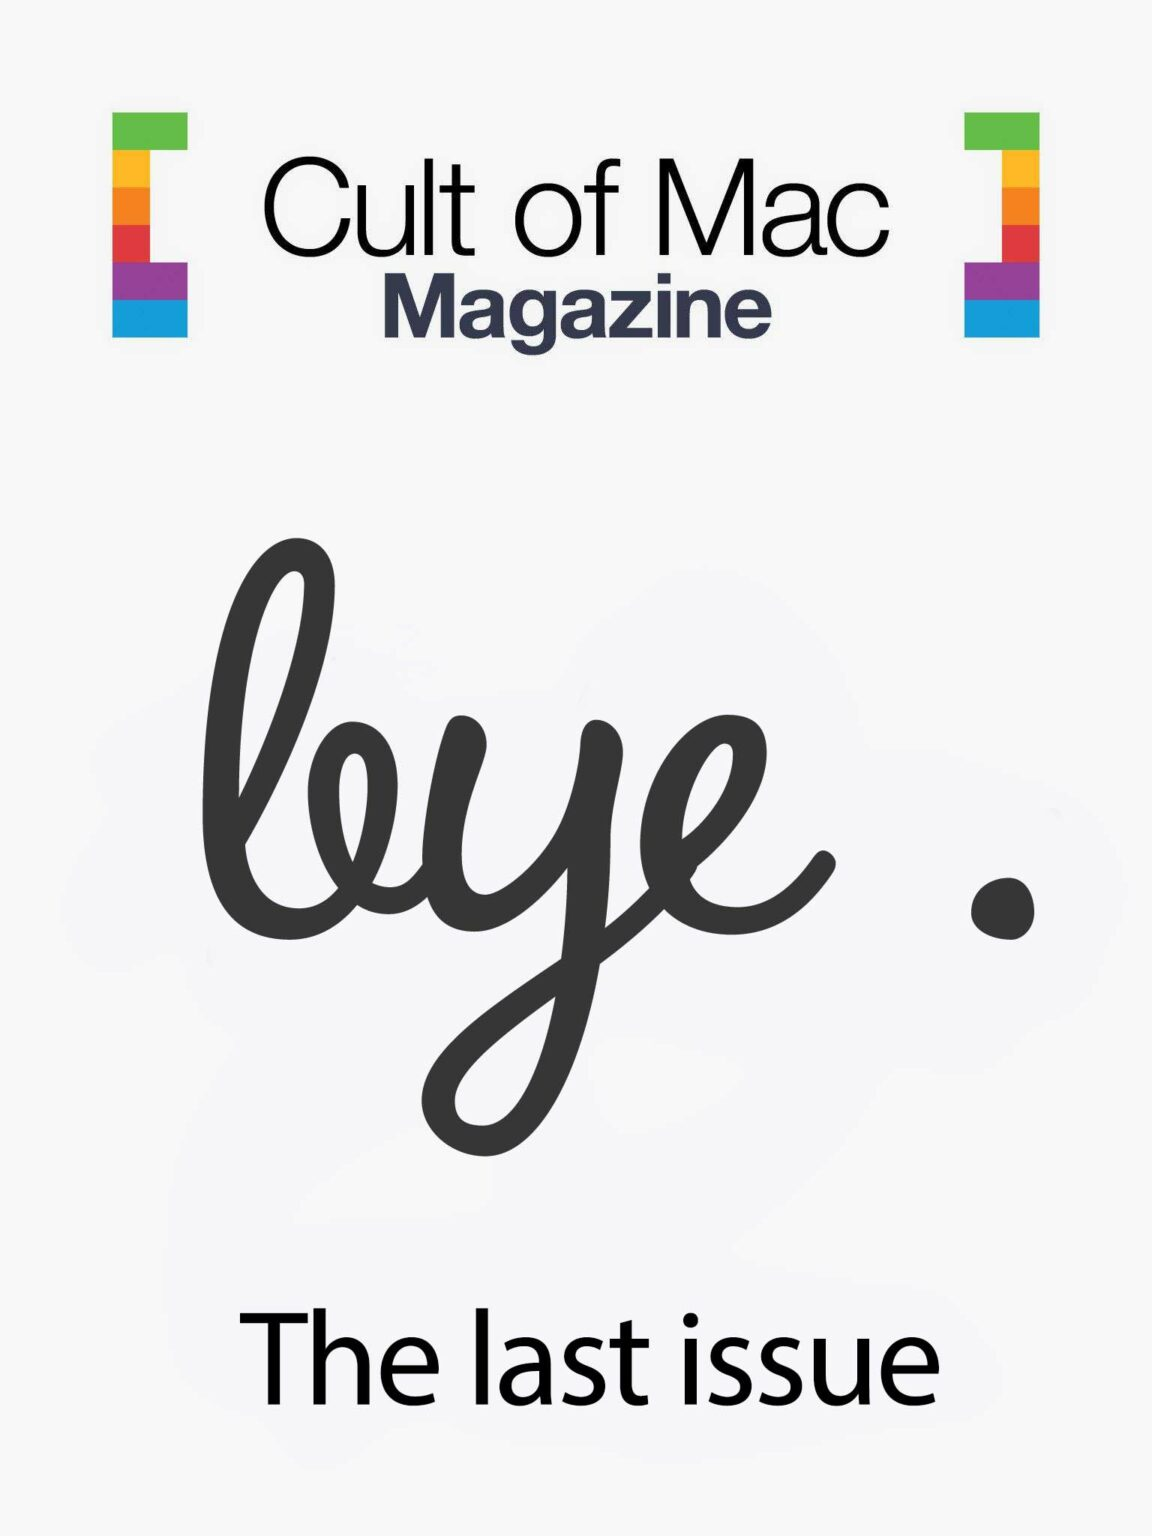 Cult of Mac magazine last issue cover